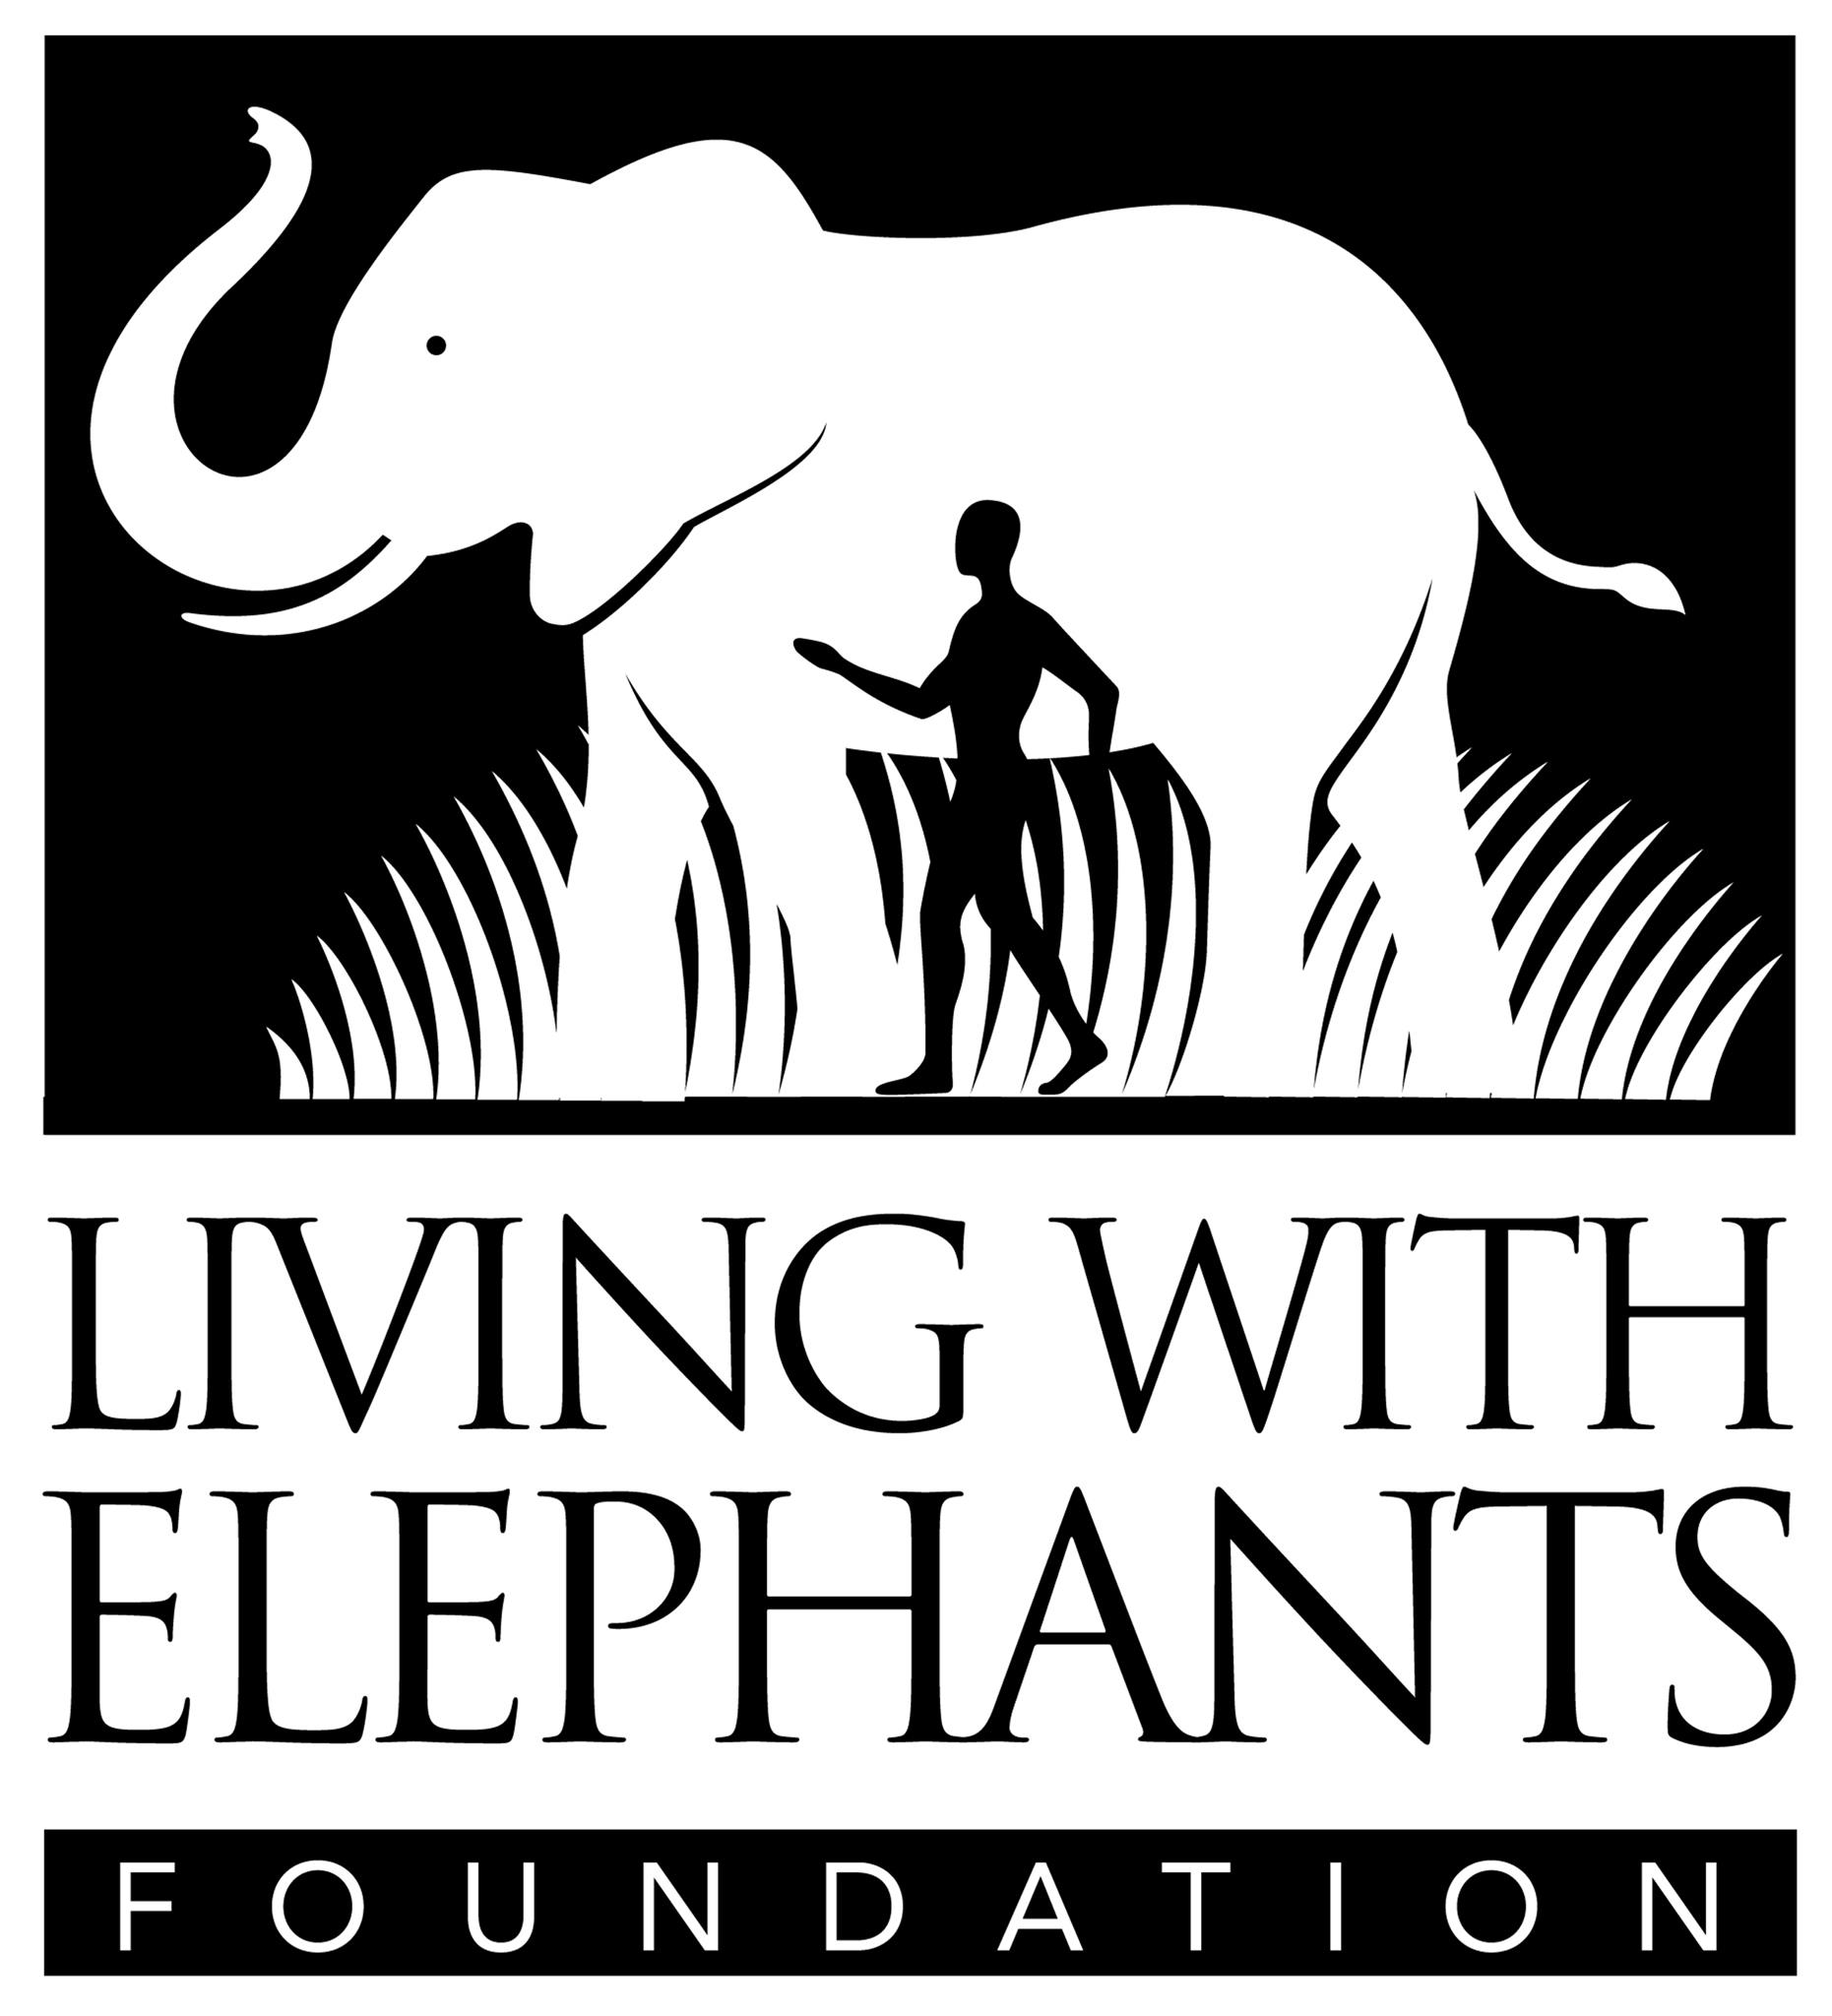 Living With Elephants Foundation logo